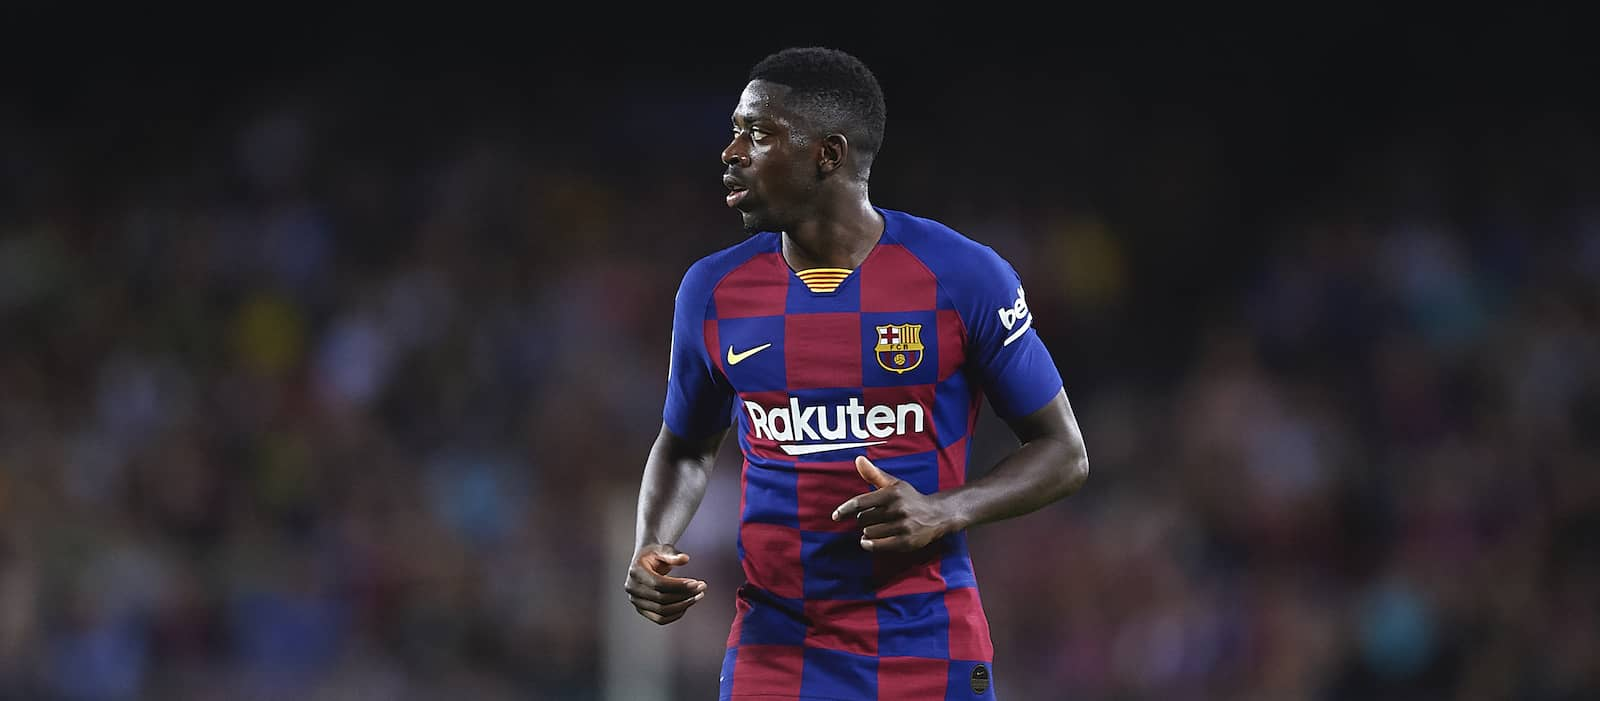 Rivaldo says Ousmane Dembele would prosper at Man United